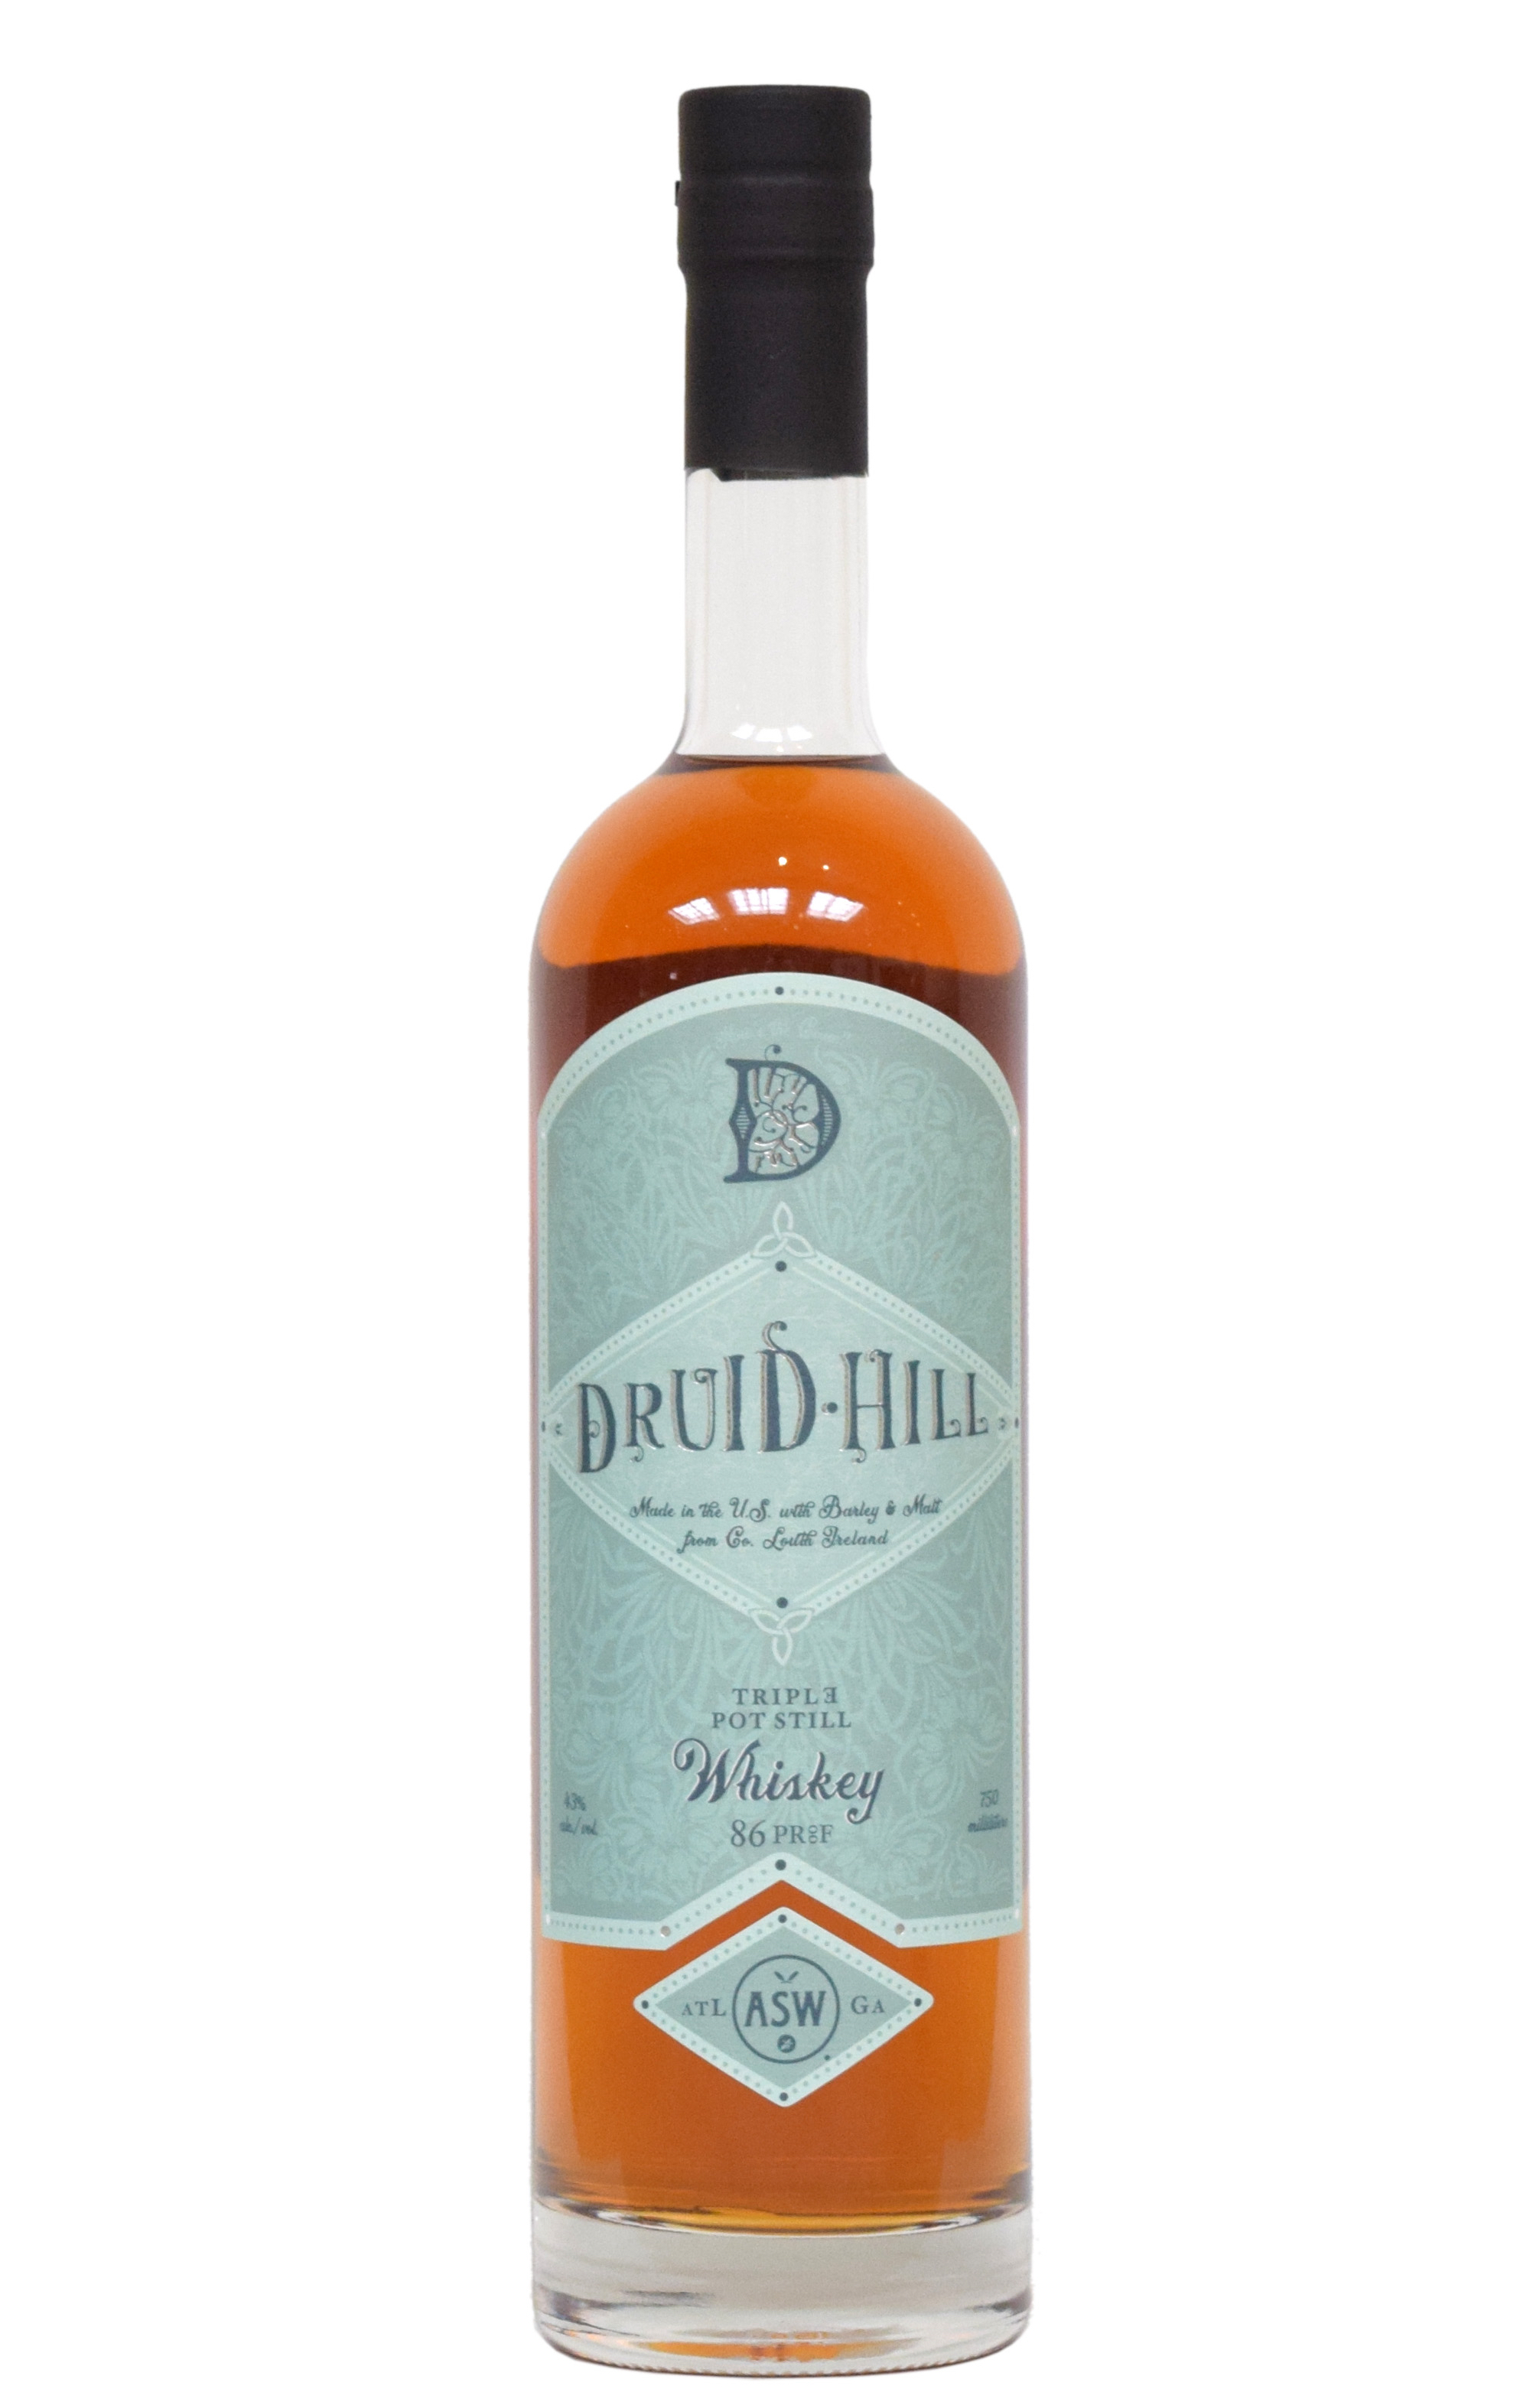 ASW Distillery - Atlanta's Hometown Bourbon Rye Malt Whiskey Distillery - Druid Hill Irish Style Whiskey White Background.jpg